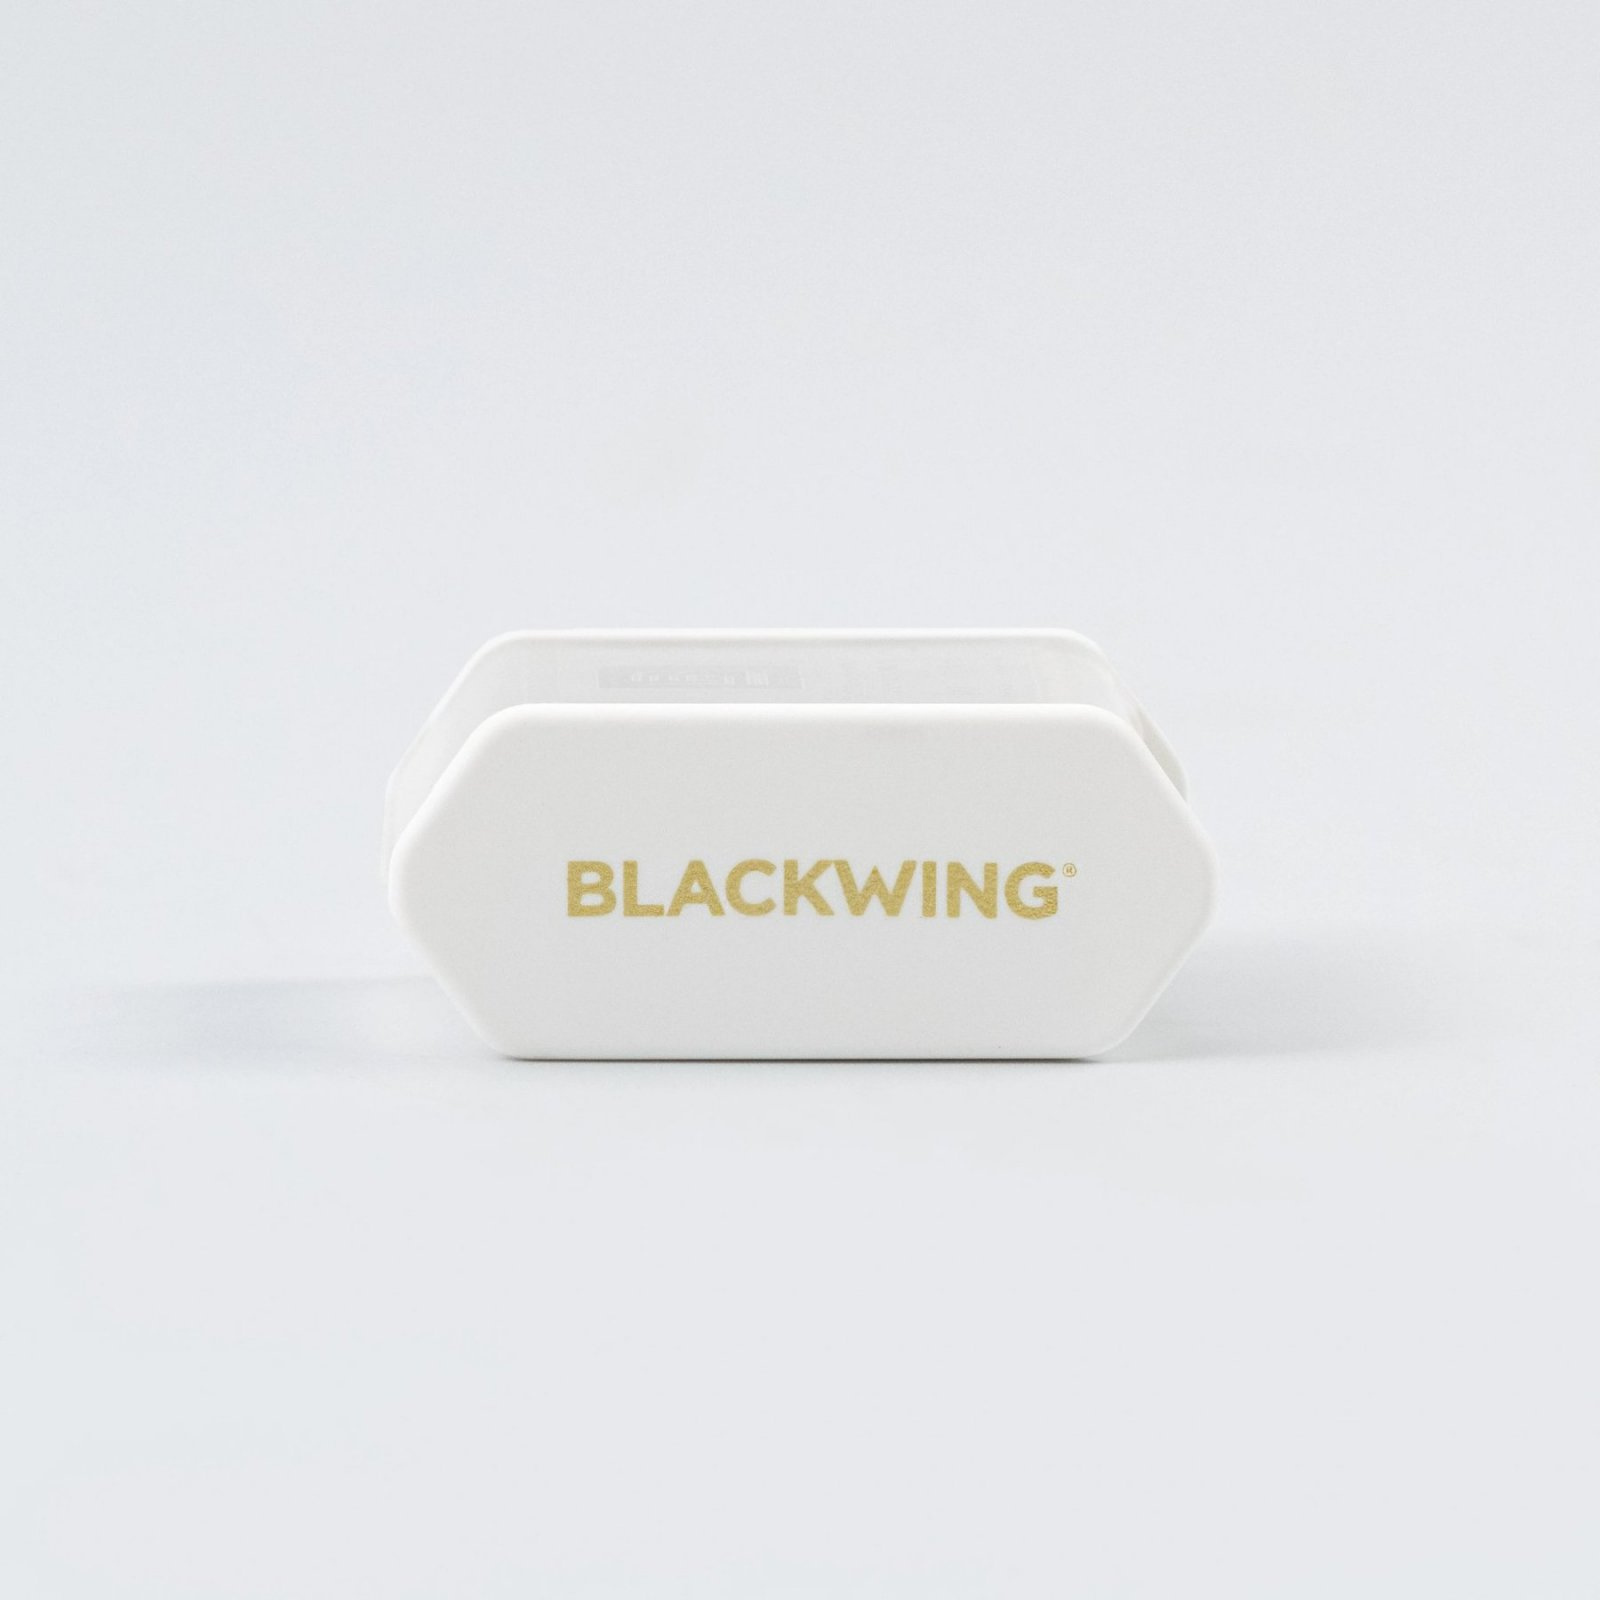 New Long-Point Pencil Sharpener by Blackwing - White